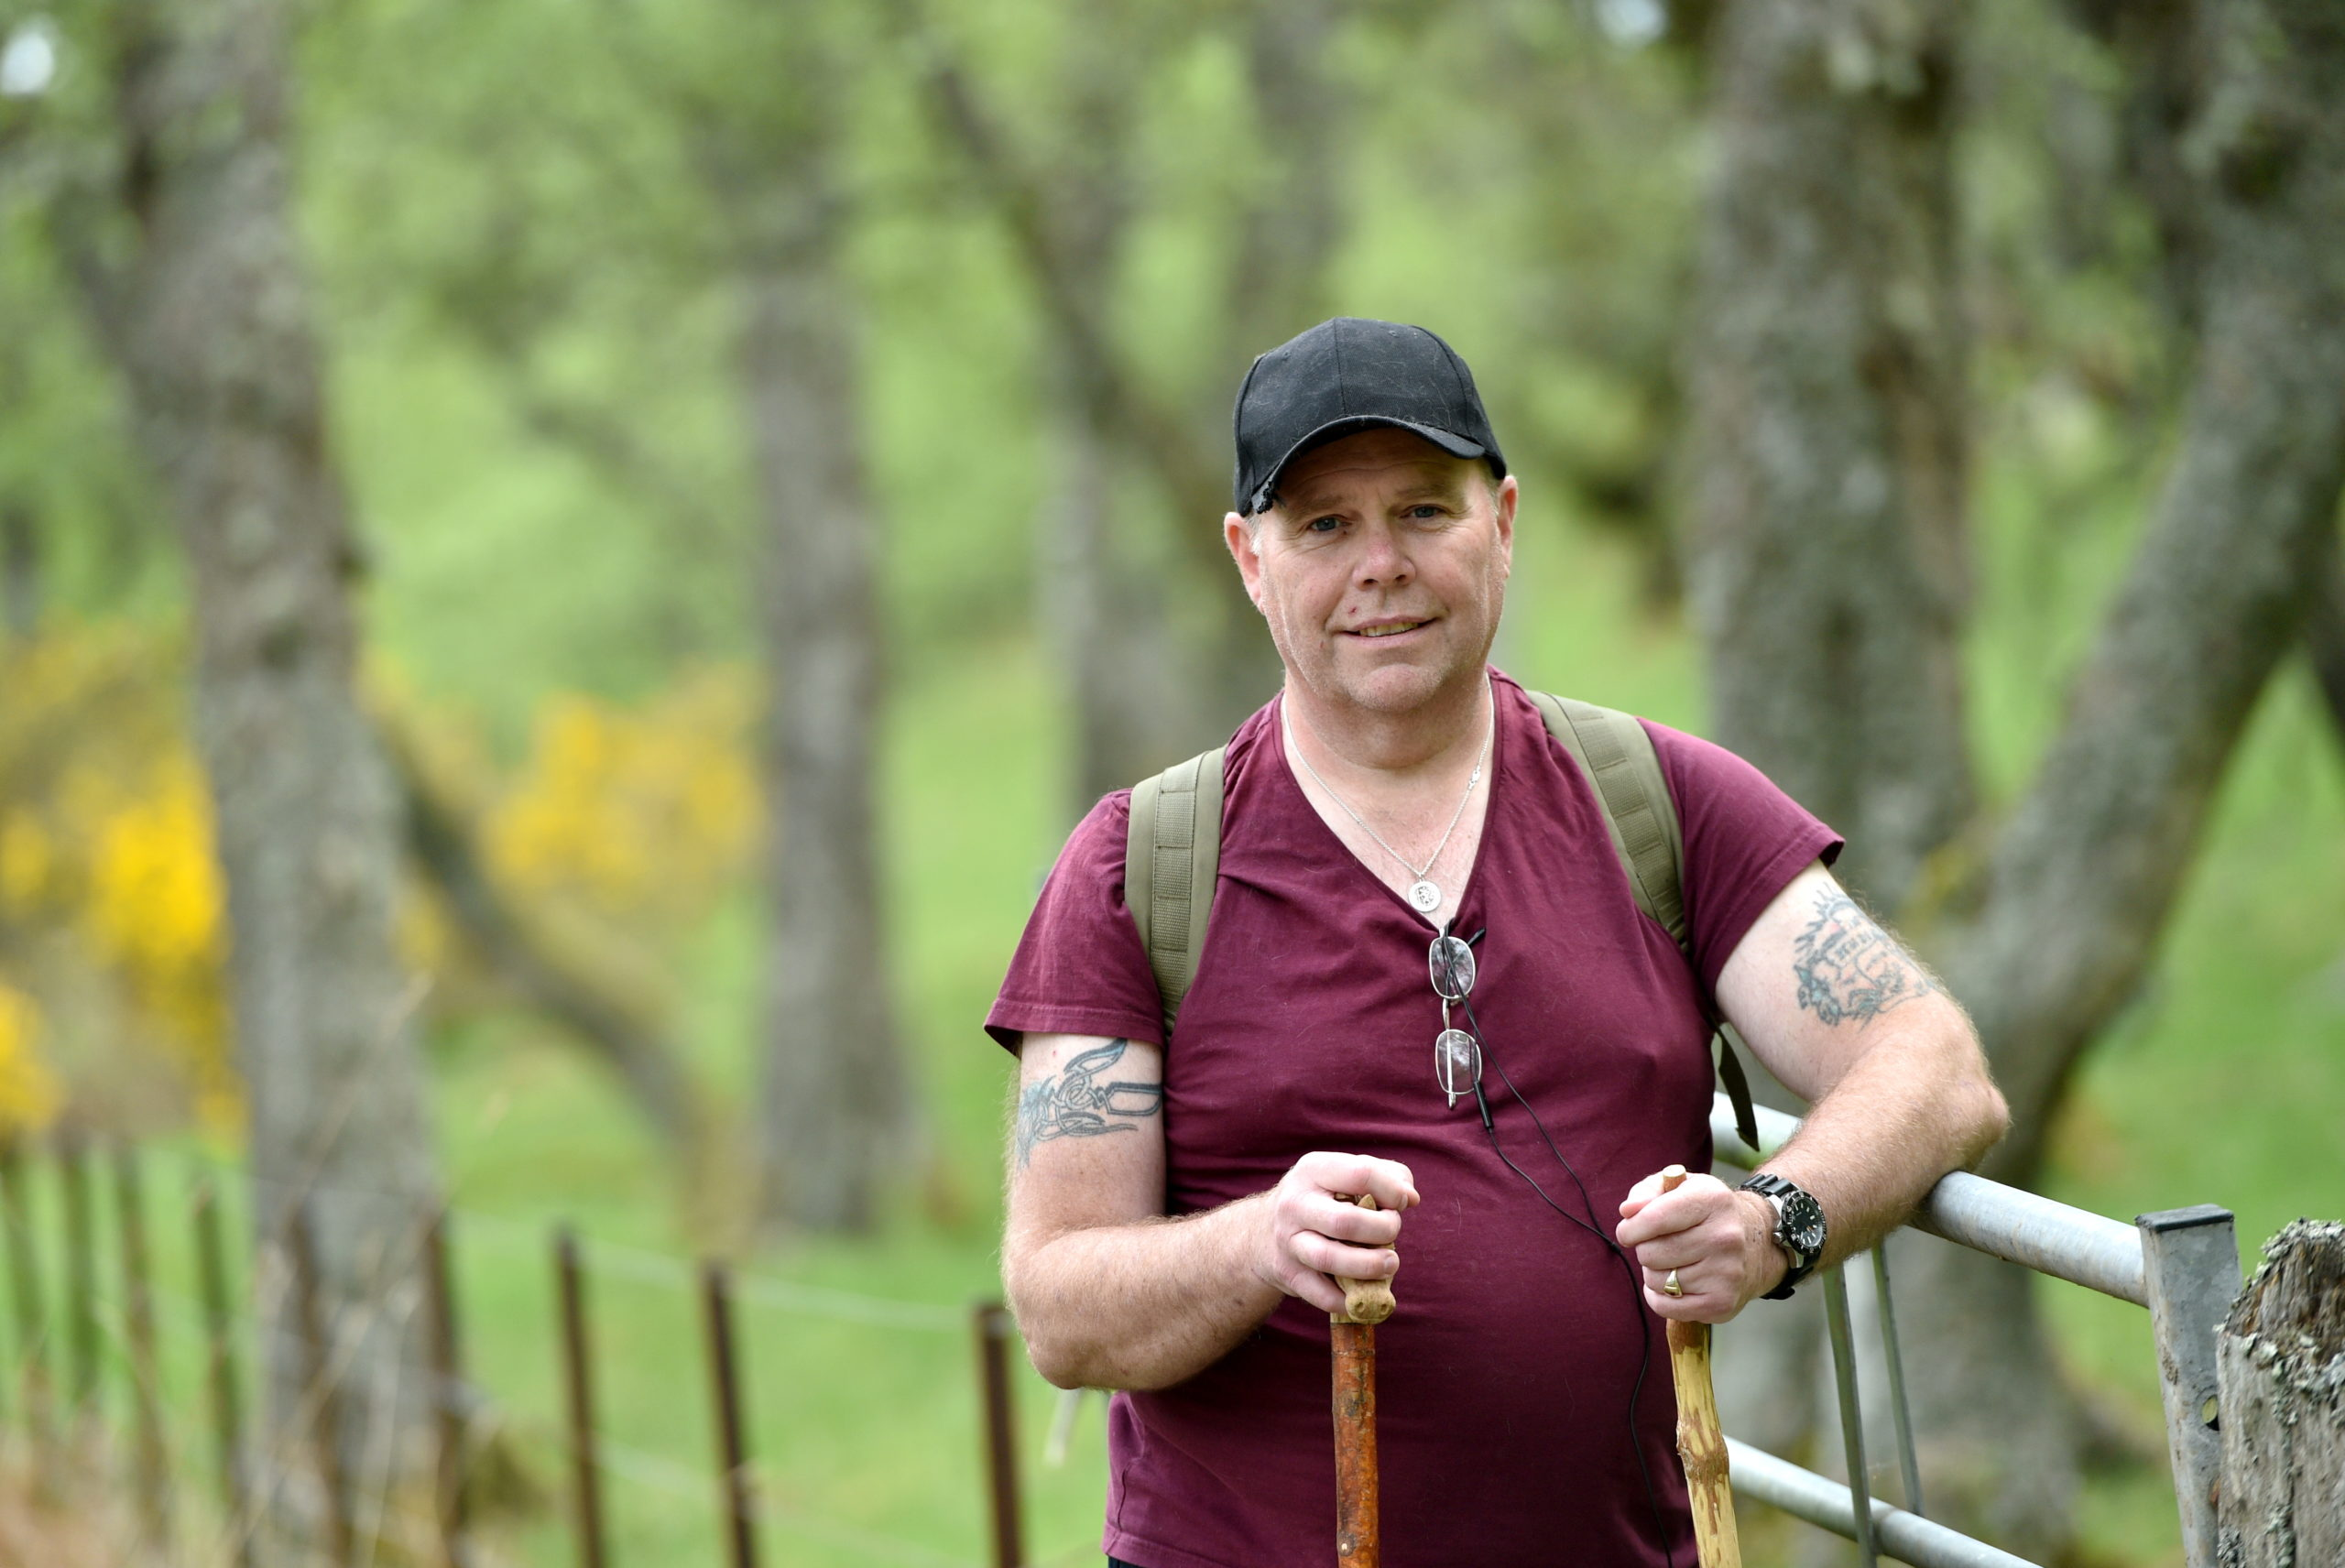 Mark Robinson has completed a million-step challenge for NHS charities. Image by Darrell Benns